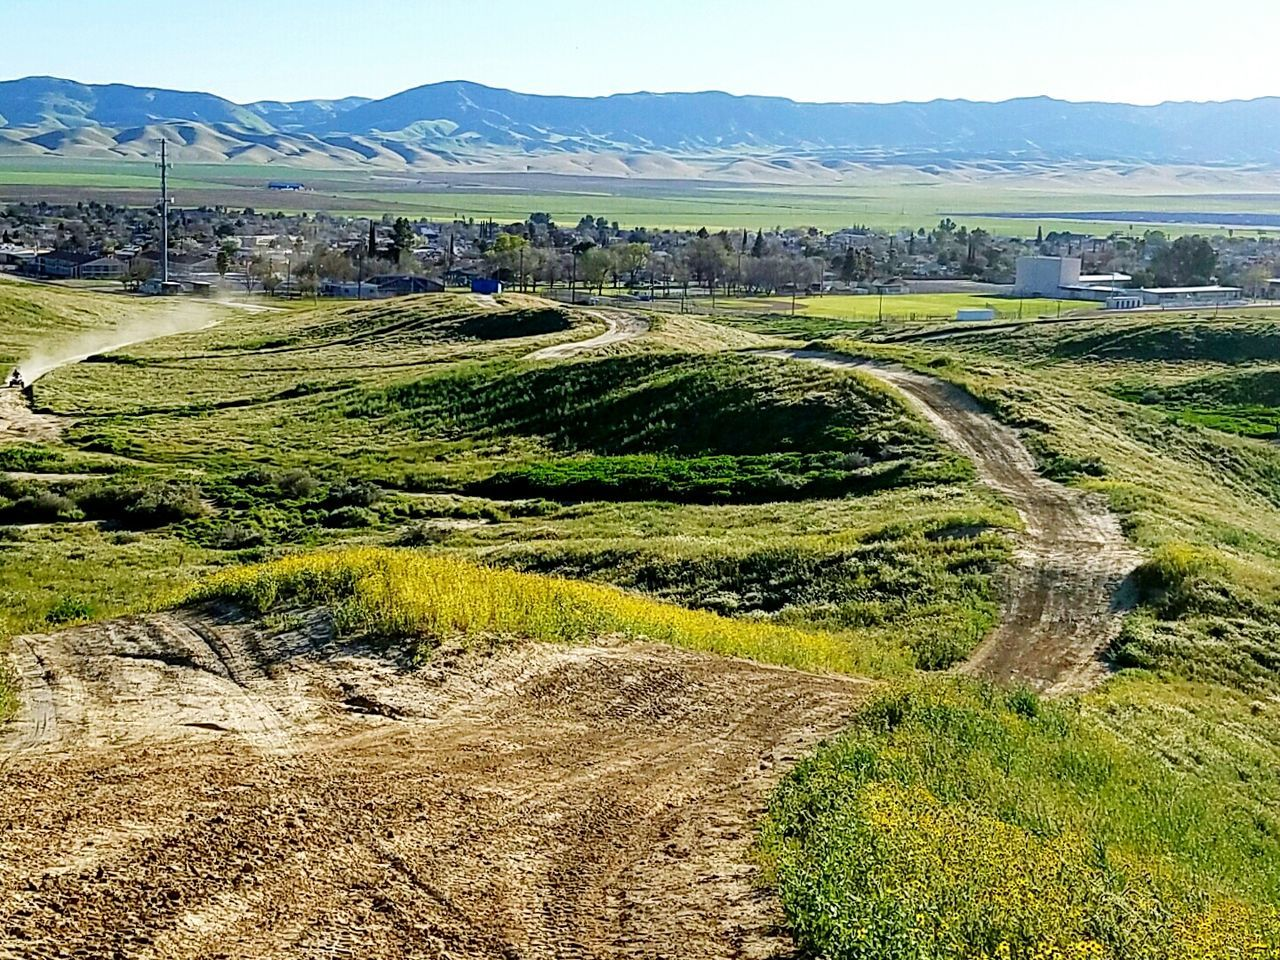 Dirt Road Outdoors Landscape Rural Scene Sky Mountain Field Day The Hills Avenal, California Fun Things To Do Clear Skies First Signs Of Spring Recreational Activity Blue Sunlight United States California Central Valley Area Boy Riding ATV Green Grass Flowers Shrubs Outdoor Sports Riding Around Sunshine And Shadows Sunny